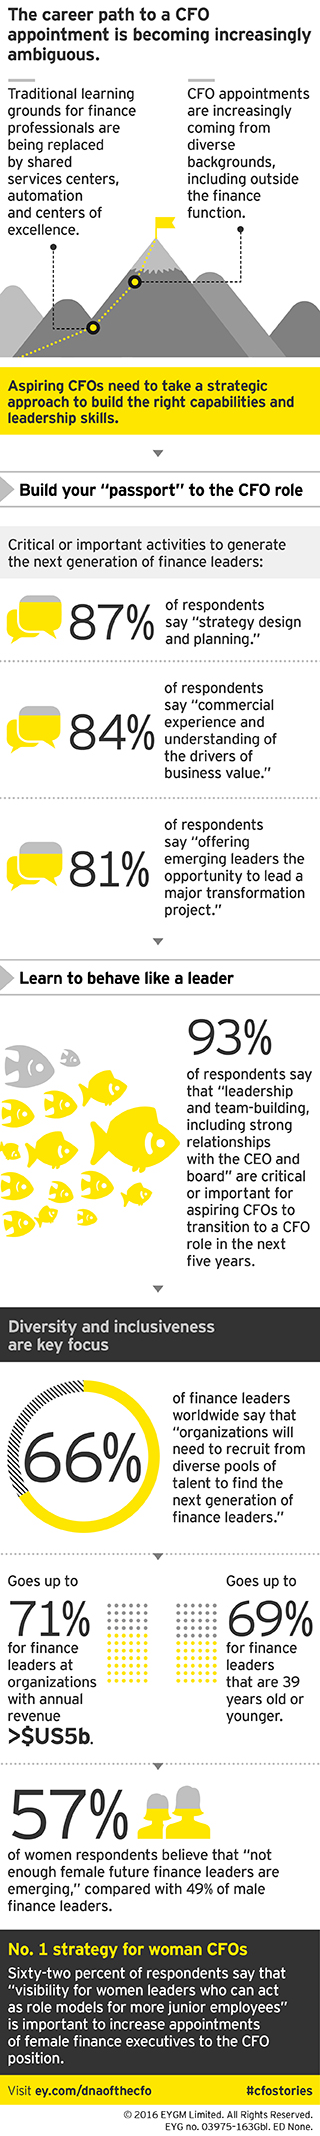 EY - The DNA of the CFO's: Keyfindings